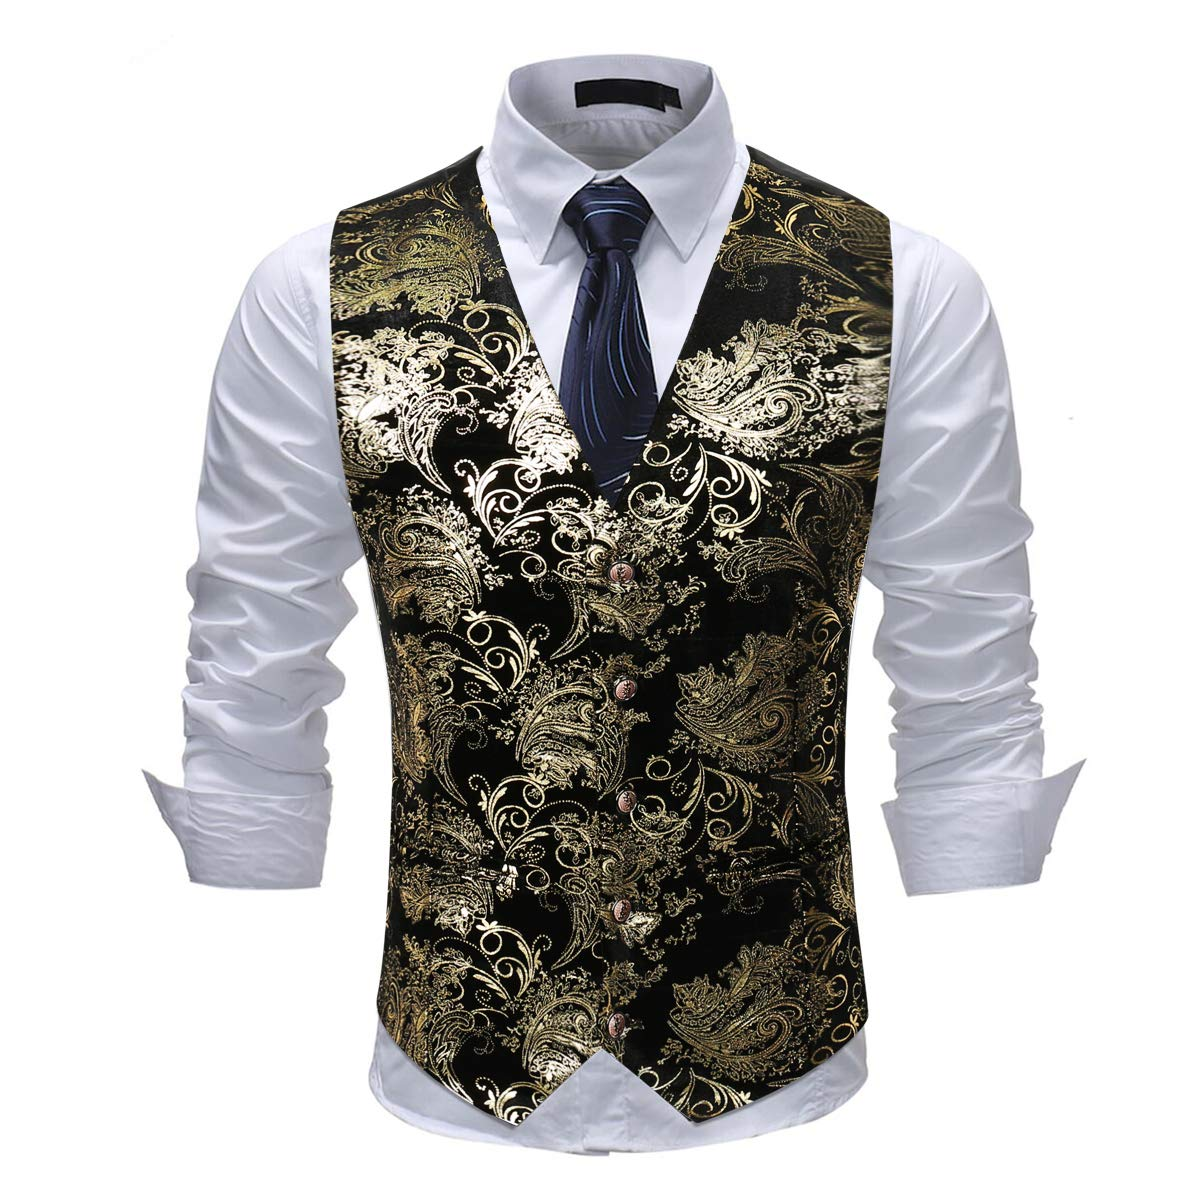 Cloudstyle Mens Single Breasted Vest Dress Vest Slim Fit Button Down Prom Formal Suit Vest Waistcoat by Cloudstyle